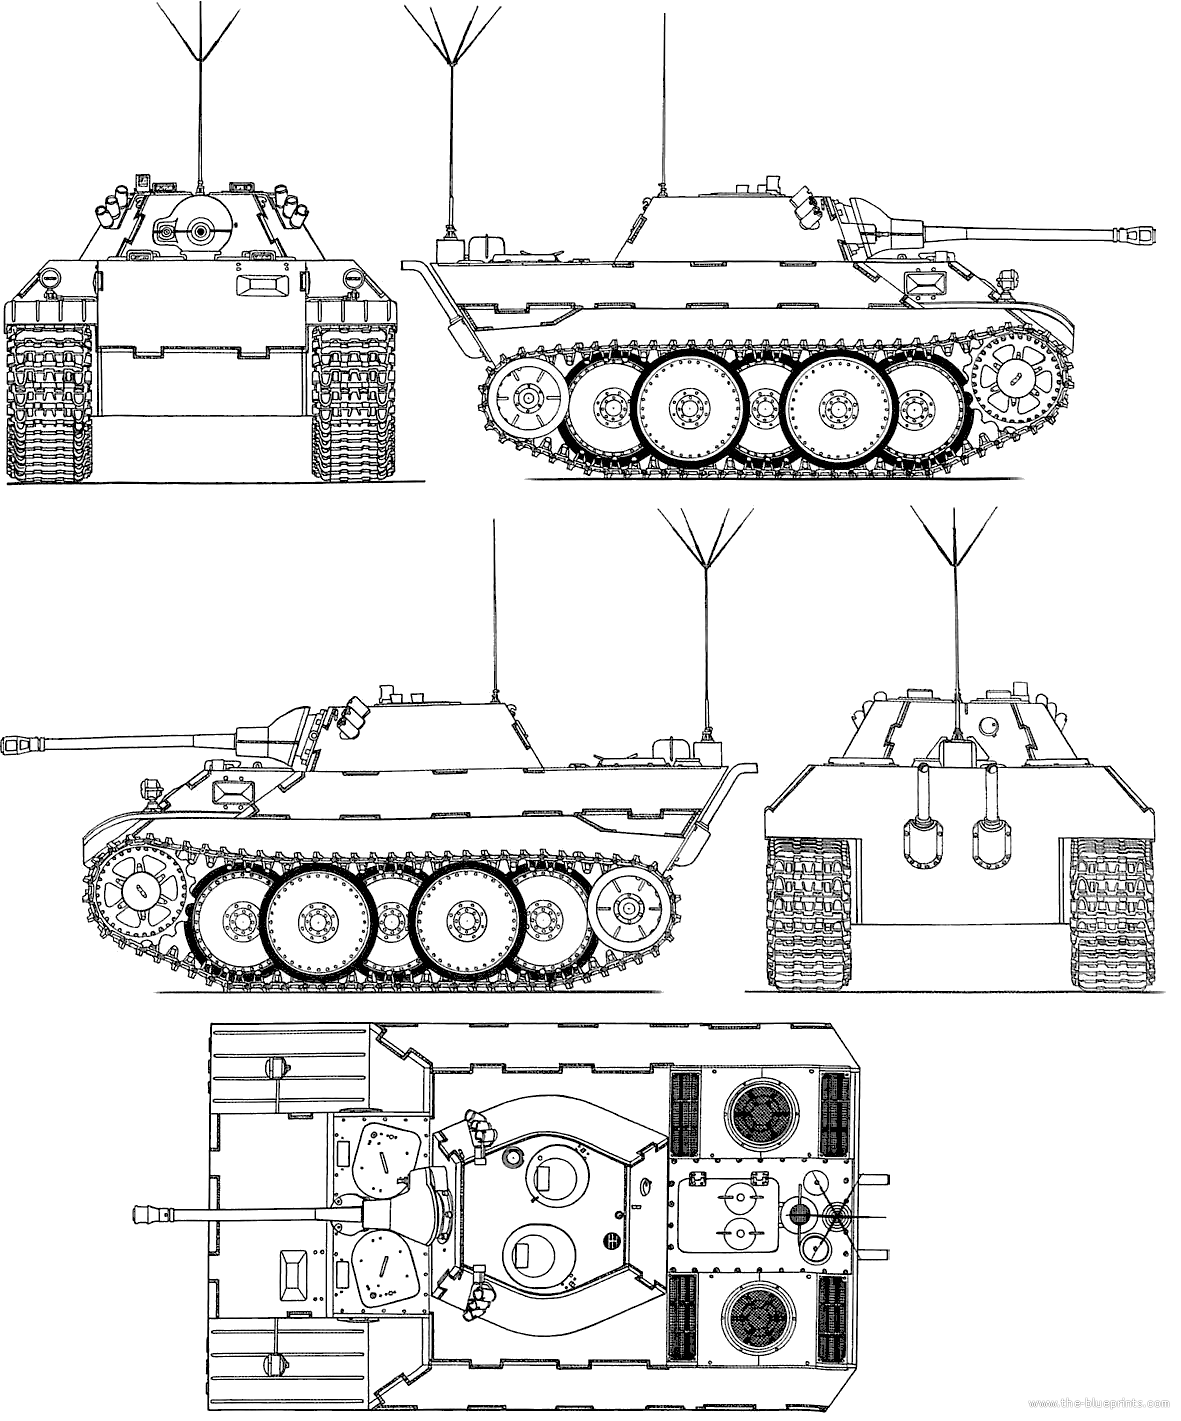 With The New Lt Abilities Being Added Ghaijeen Plz Vk 16